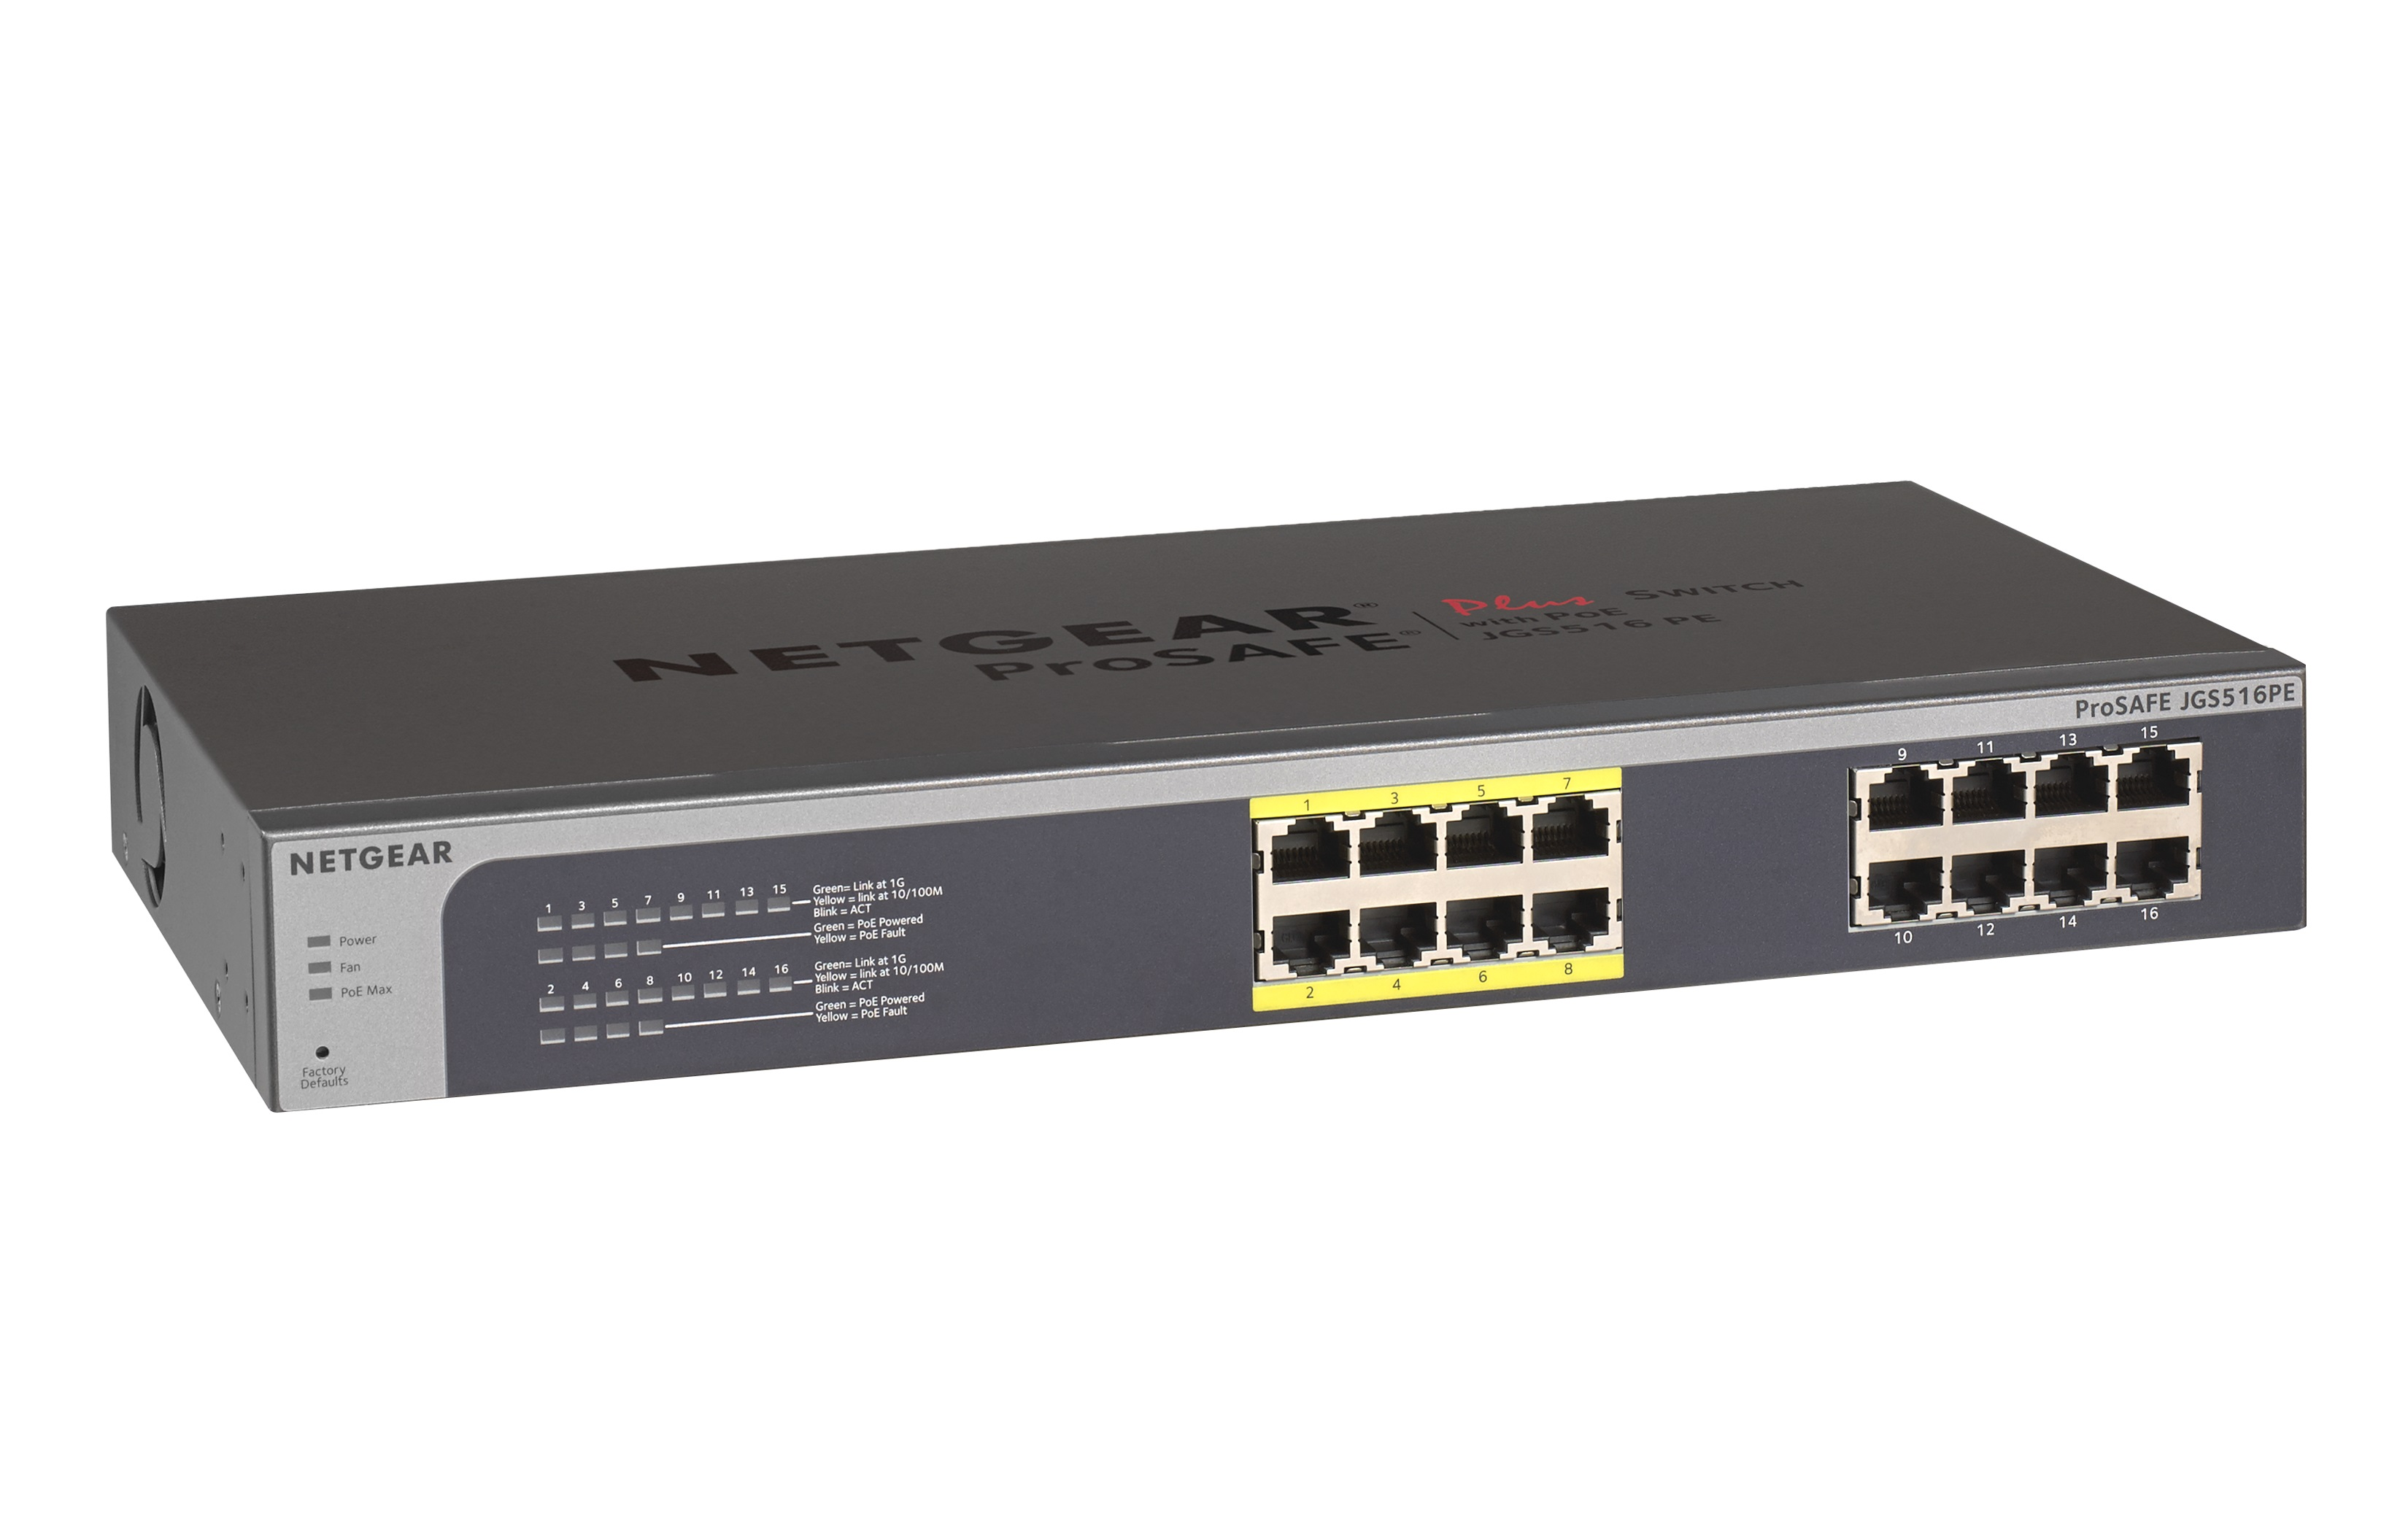 Netgear PLUS SWITCH 16xGbE with 8xPoE ports (Budget 85W) (management via WEB and PC utility)